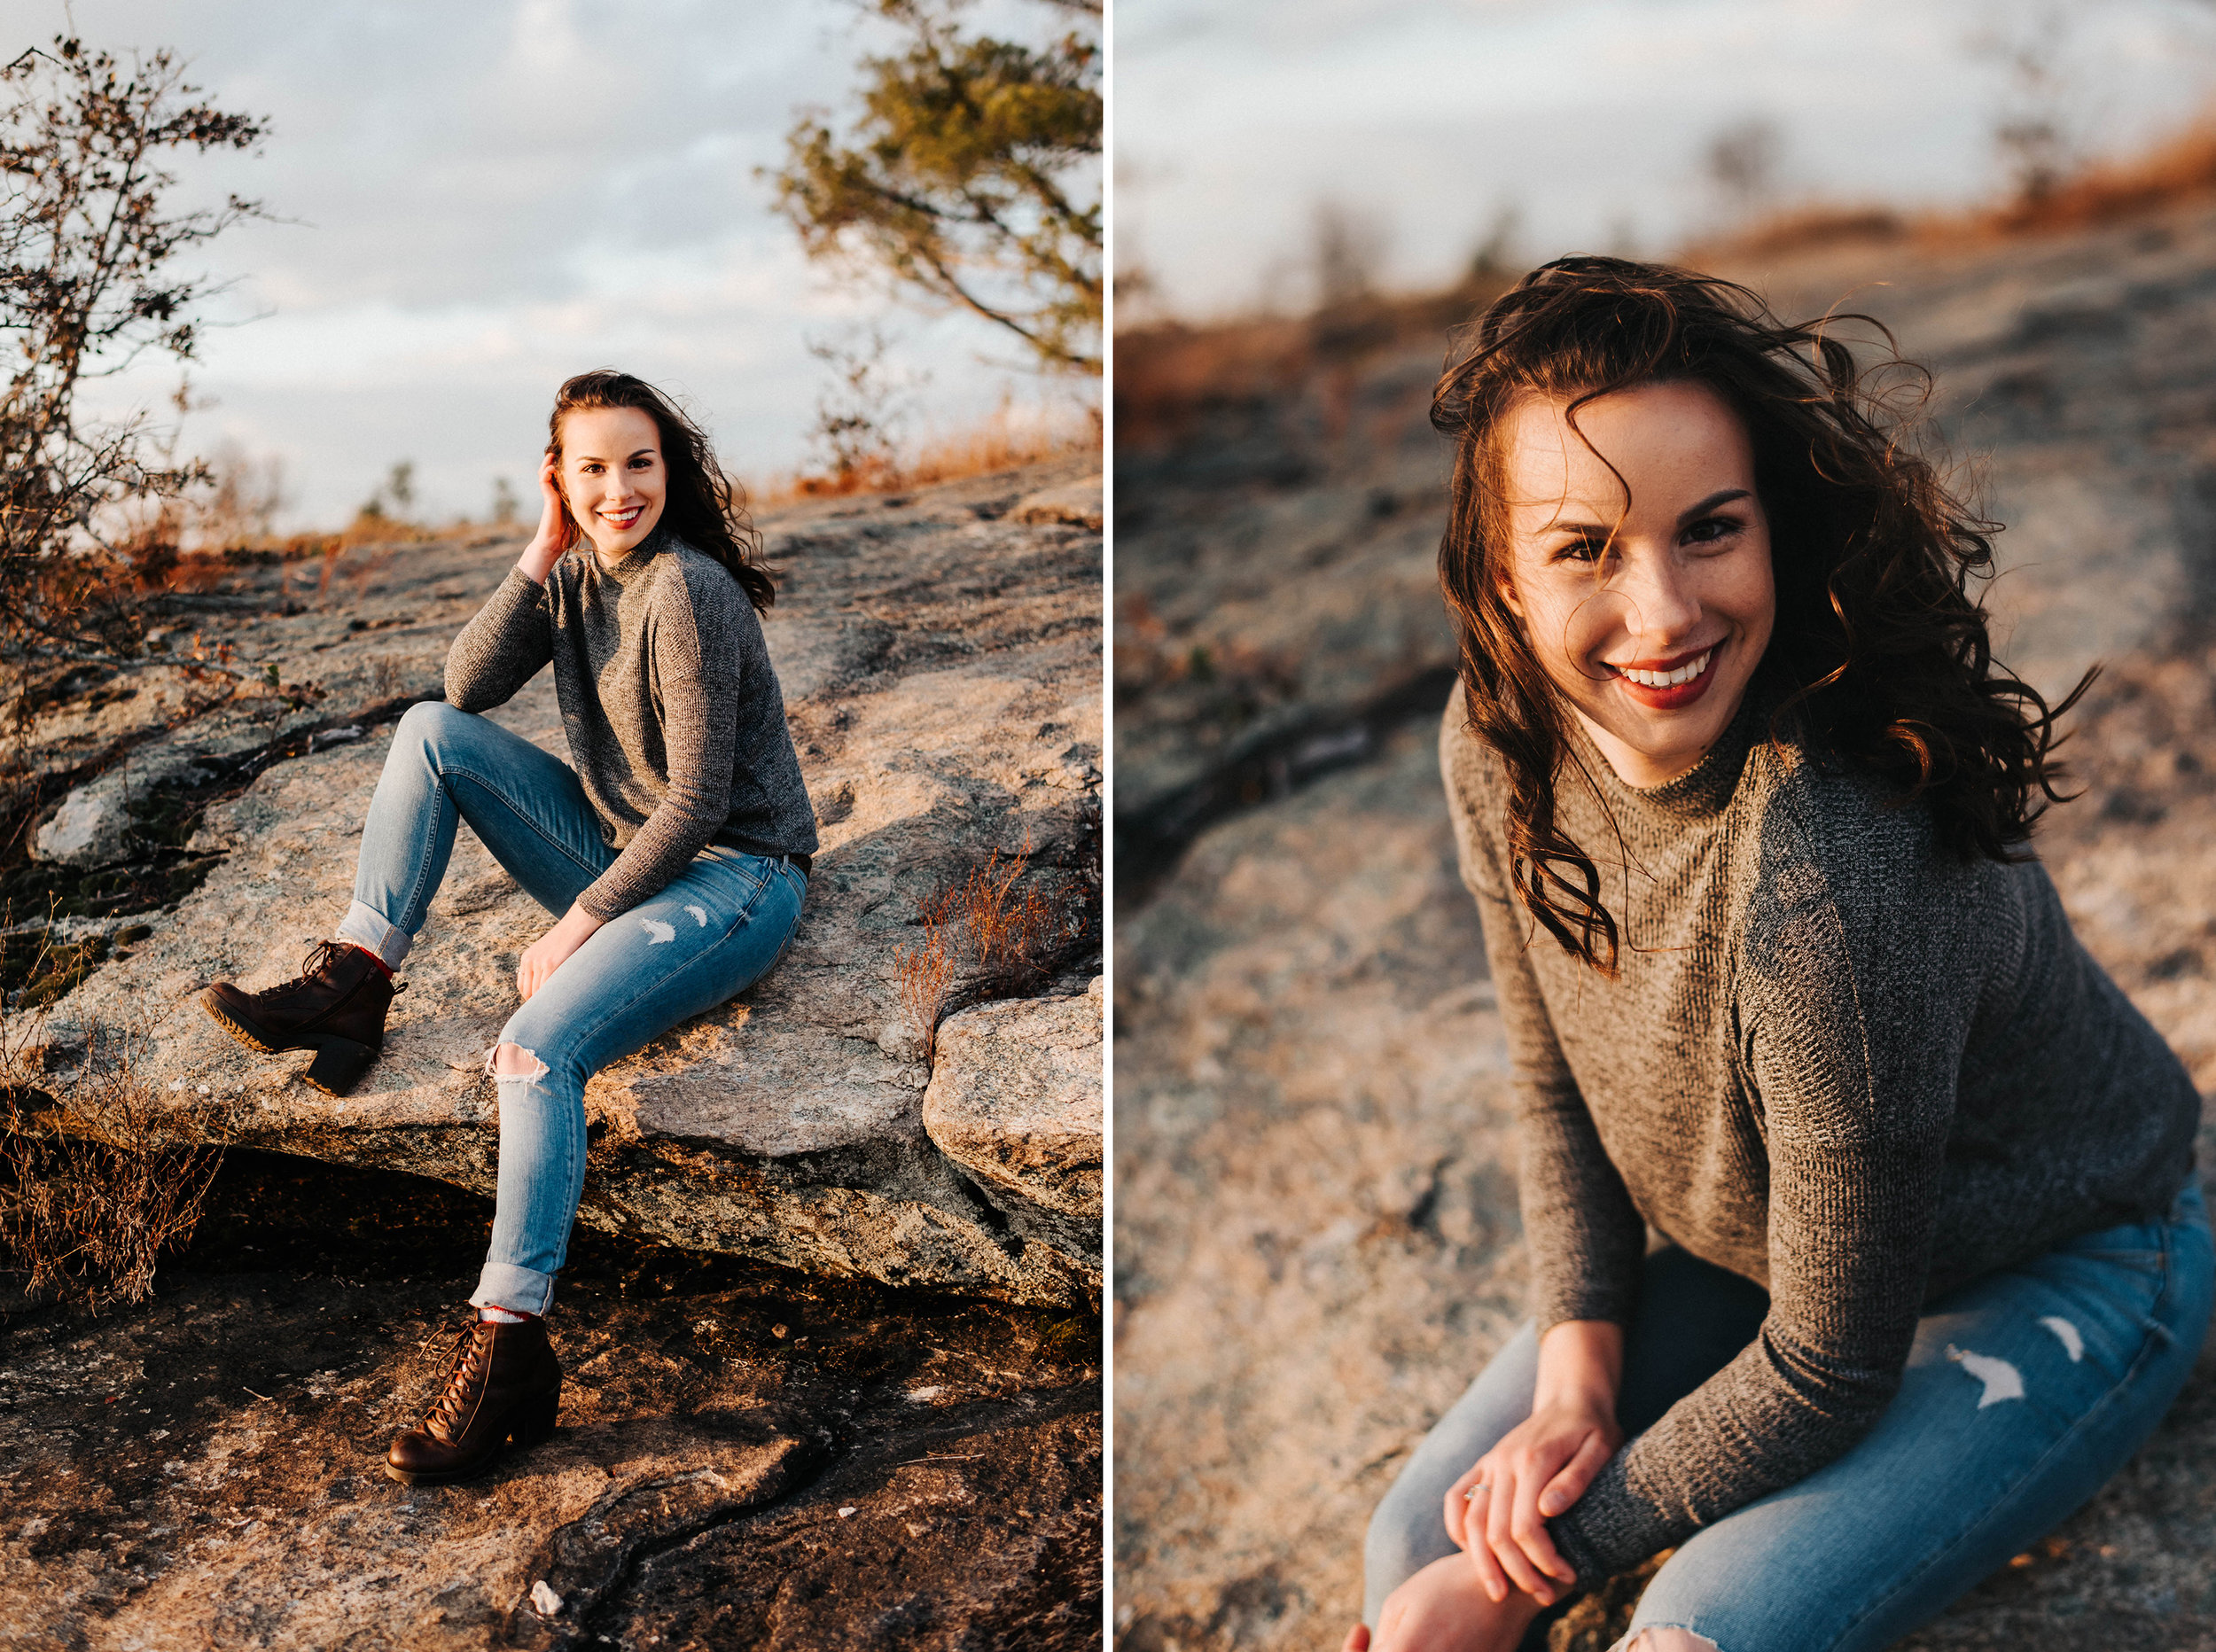 atlanta adventure senior portrait photographer 5.jpg